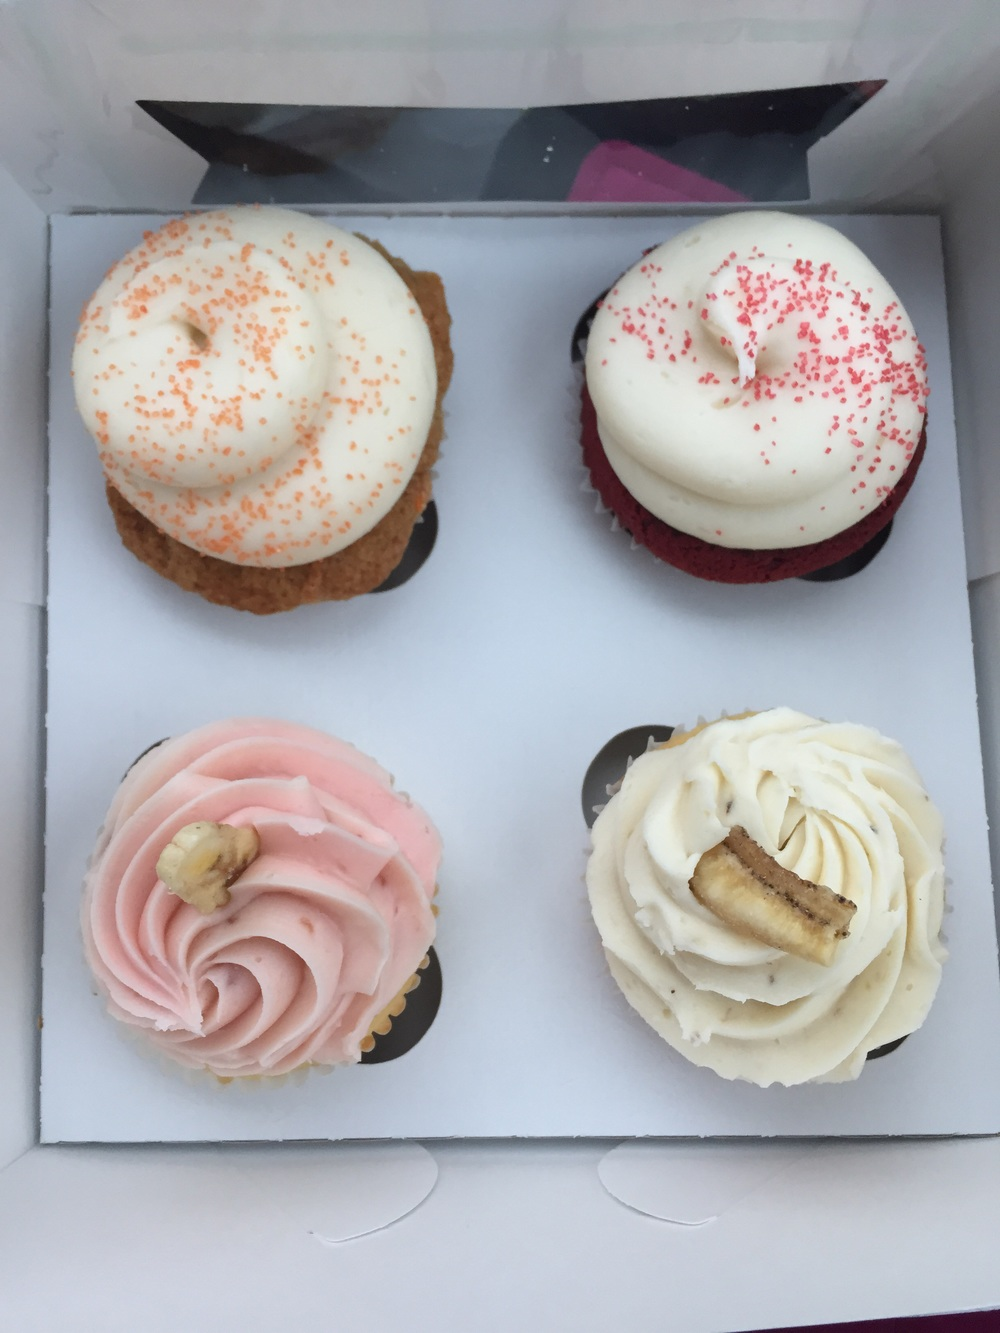 TOP LEFT: Carrot Cake; TOP RIGHT: Red Velvet; BOTTOM LEFT: Strawberry Banana; BOTTOM RIGHT: Strawberry Jam filled Banana Cupcate